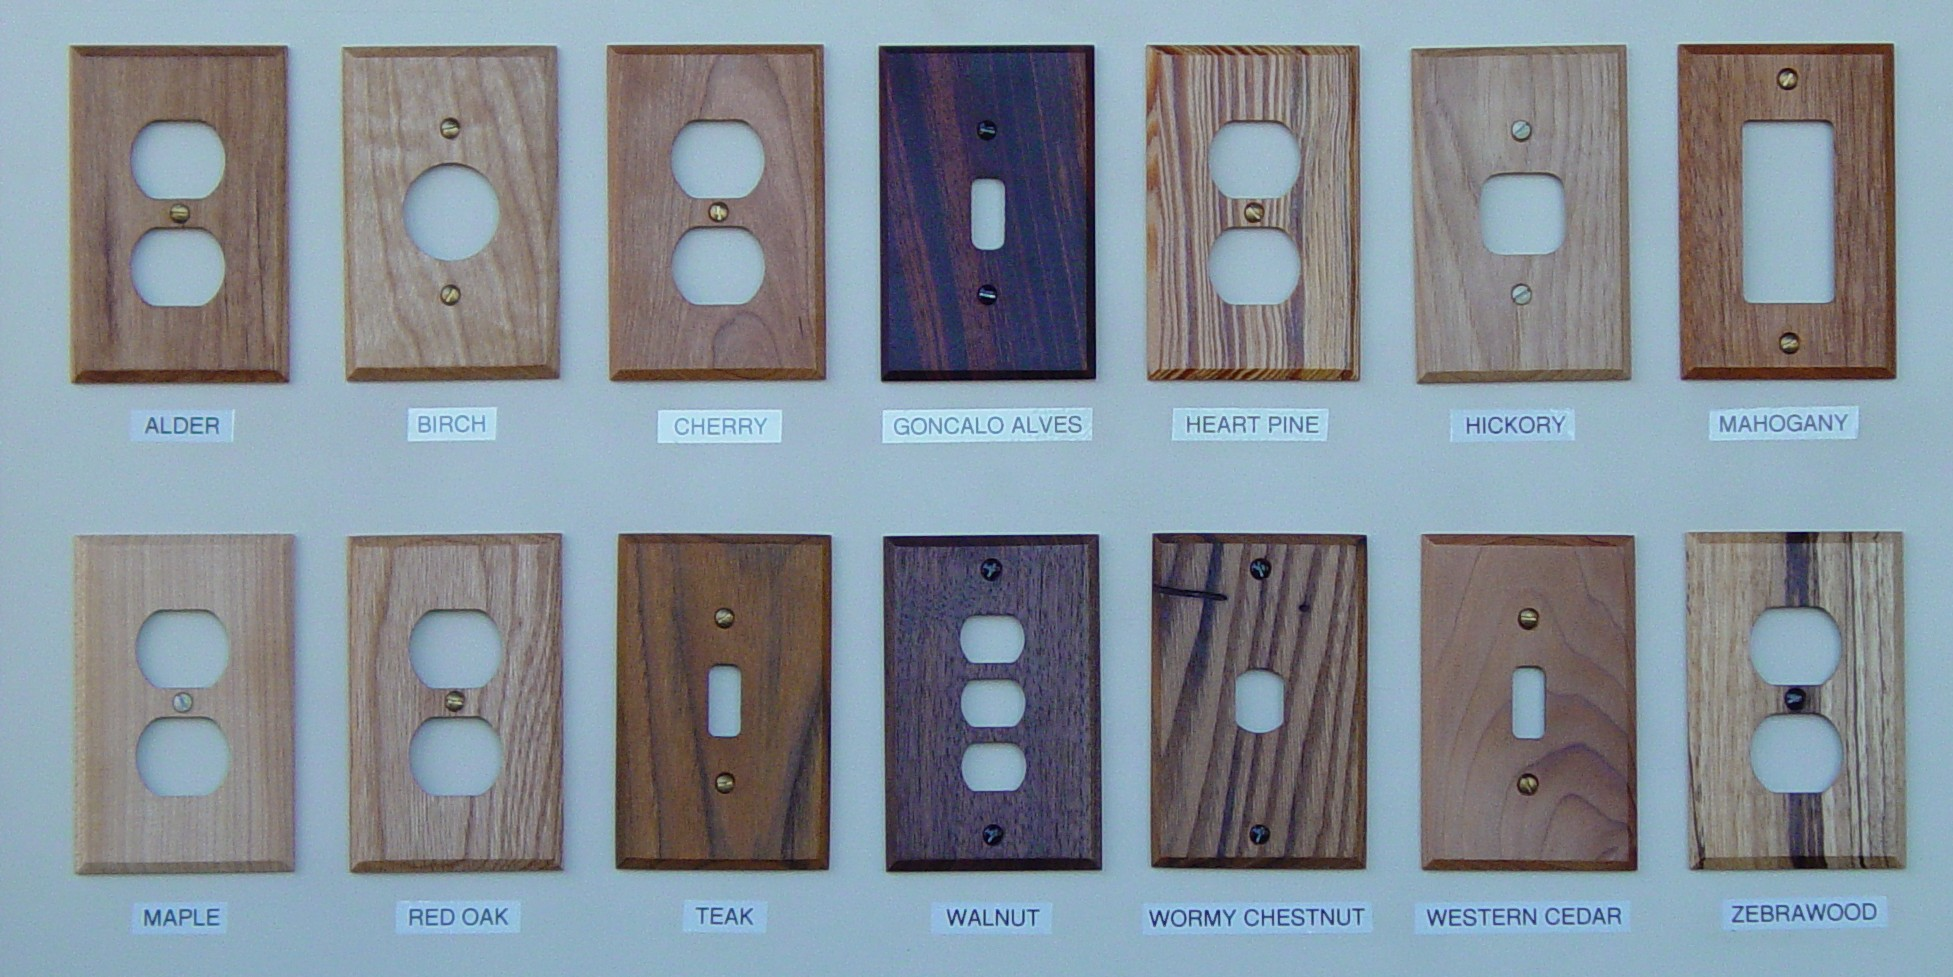 Custom Light Switch Plates We Sell Wood Switch Plates Wood Wall Plates And Log Wood Wall